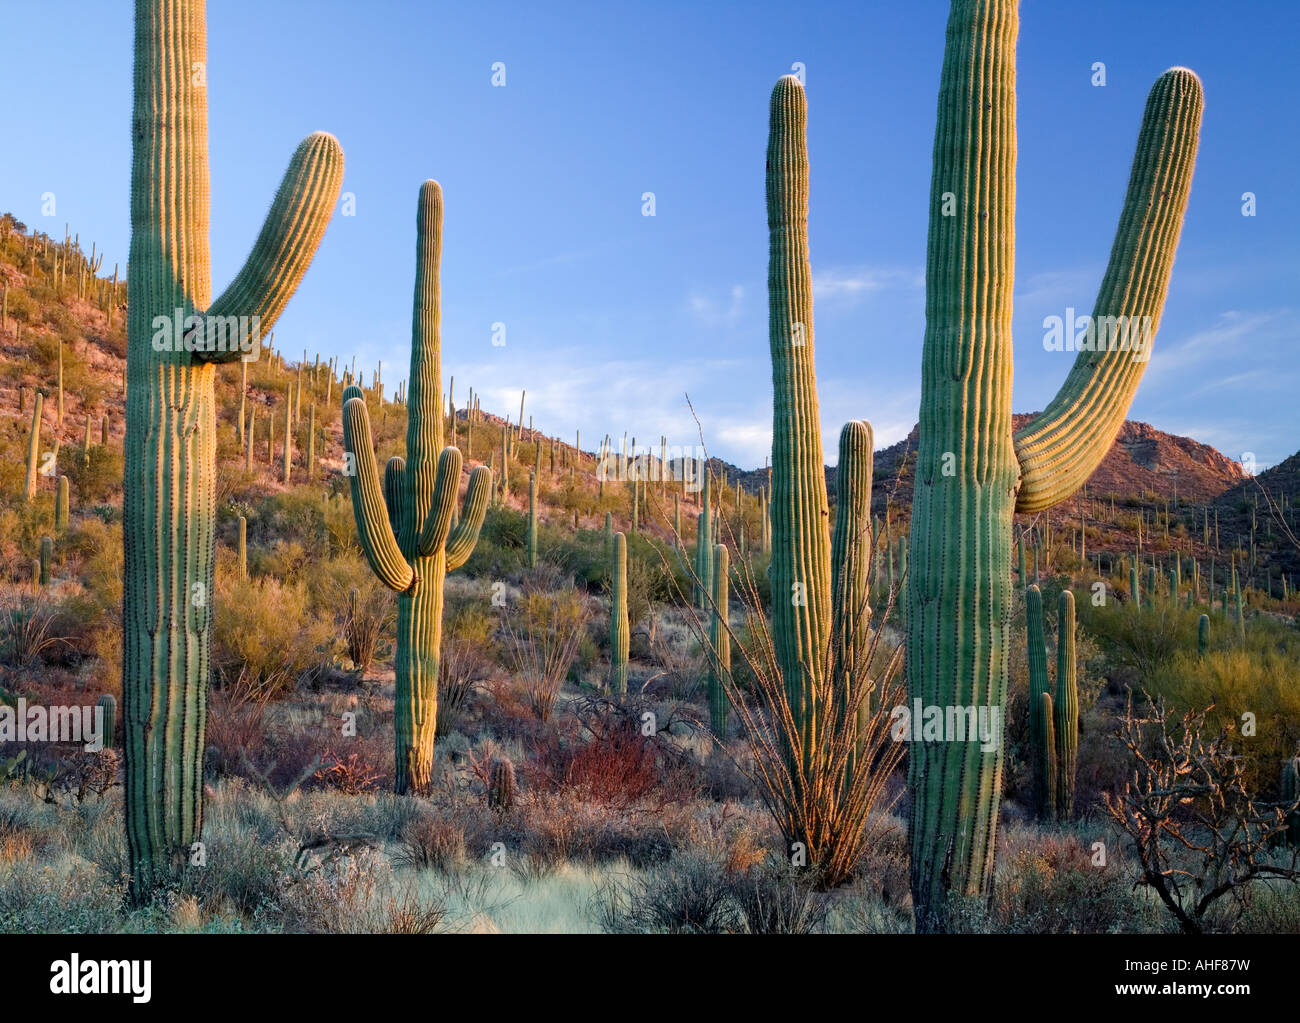 Saguaro-Kaktus in der Sonora-Wüste in der Nähe von Tucson, West-Einheit, Saguaro National Park, Arizona USA Stockfoto